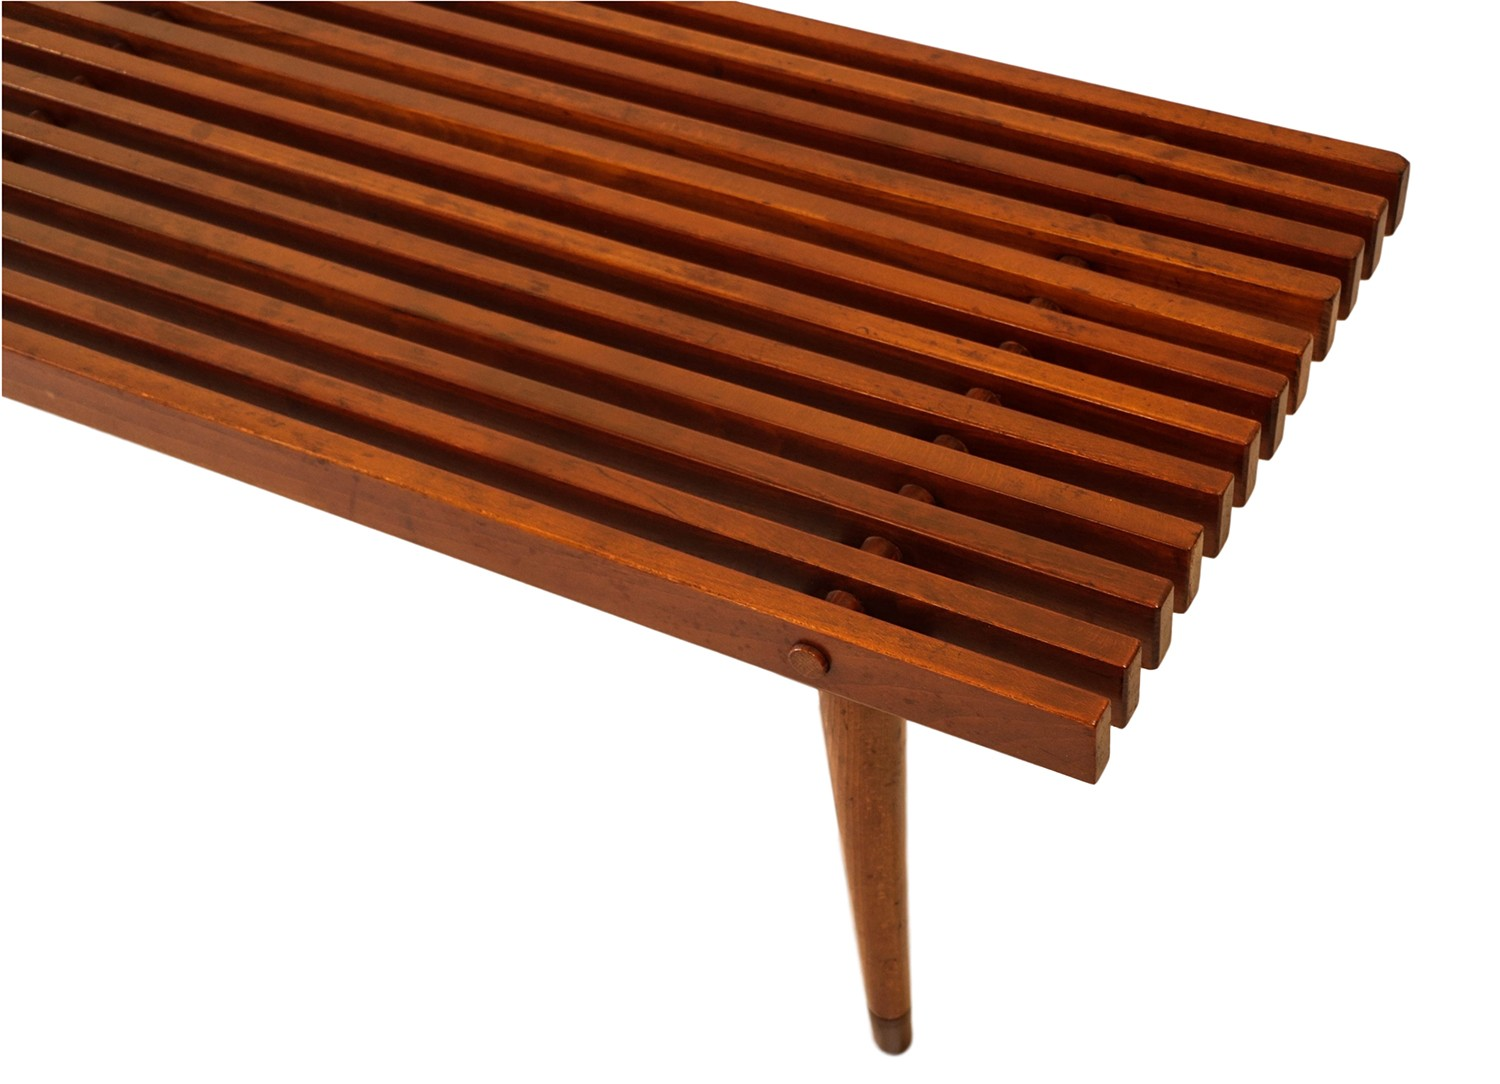 Amazing Mid Century Slatted Wood Bench Coffee Table George Nelson Style